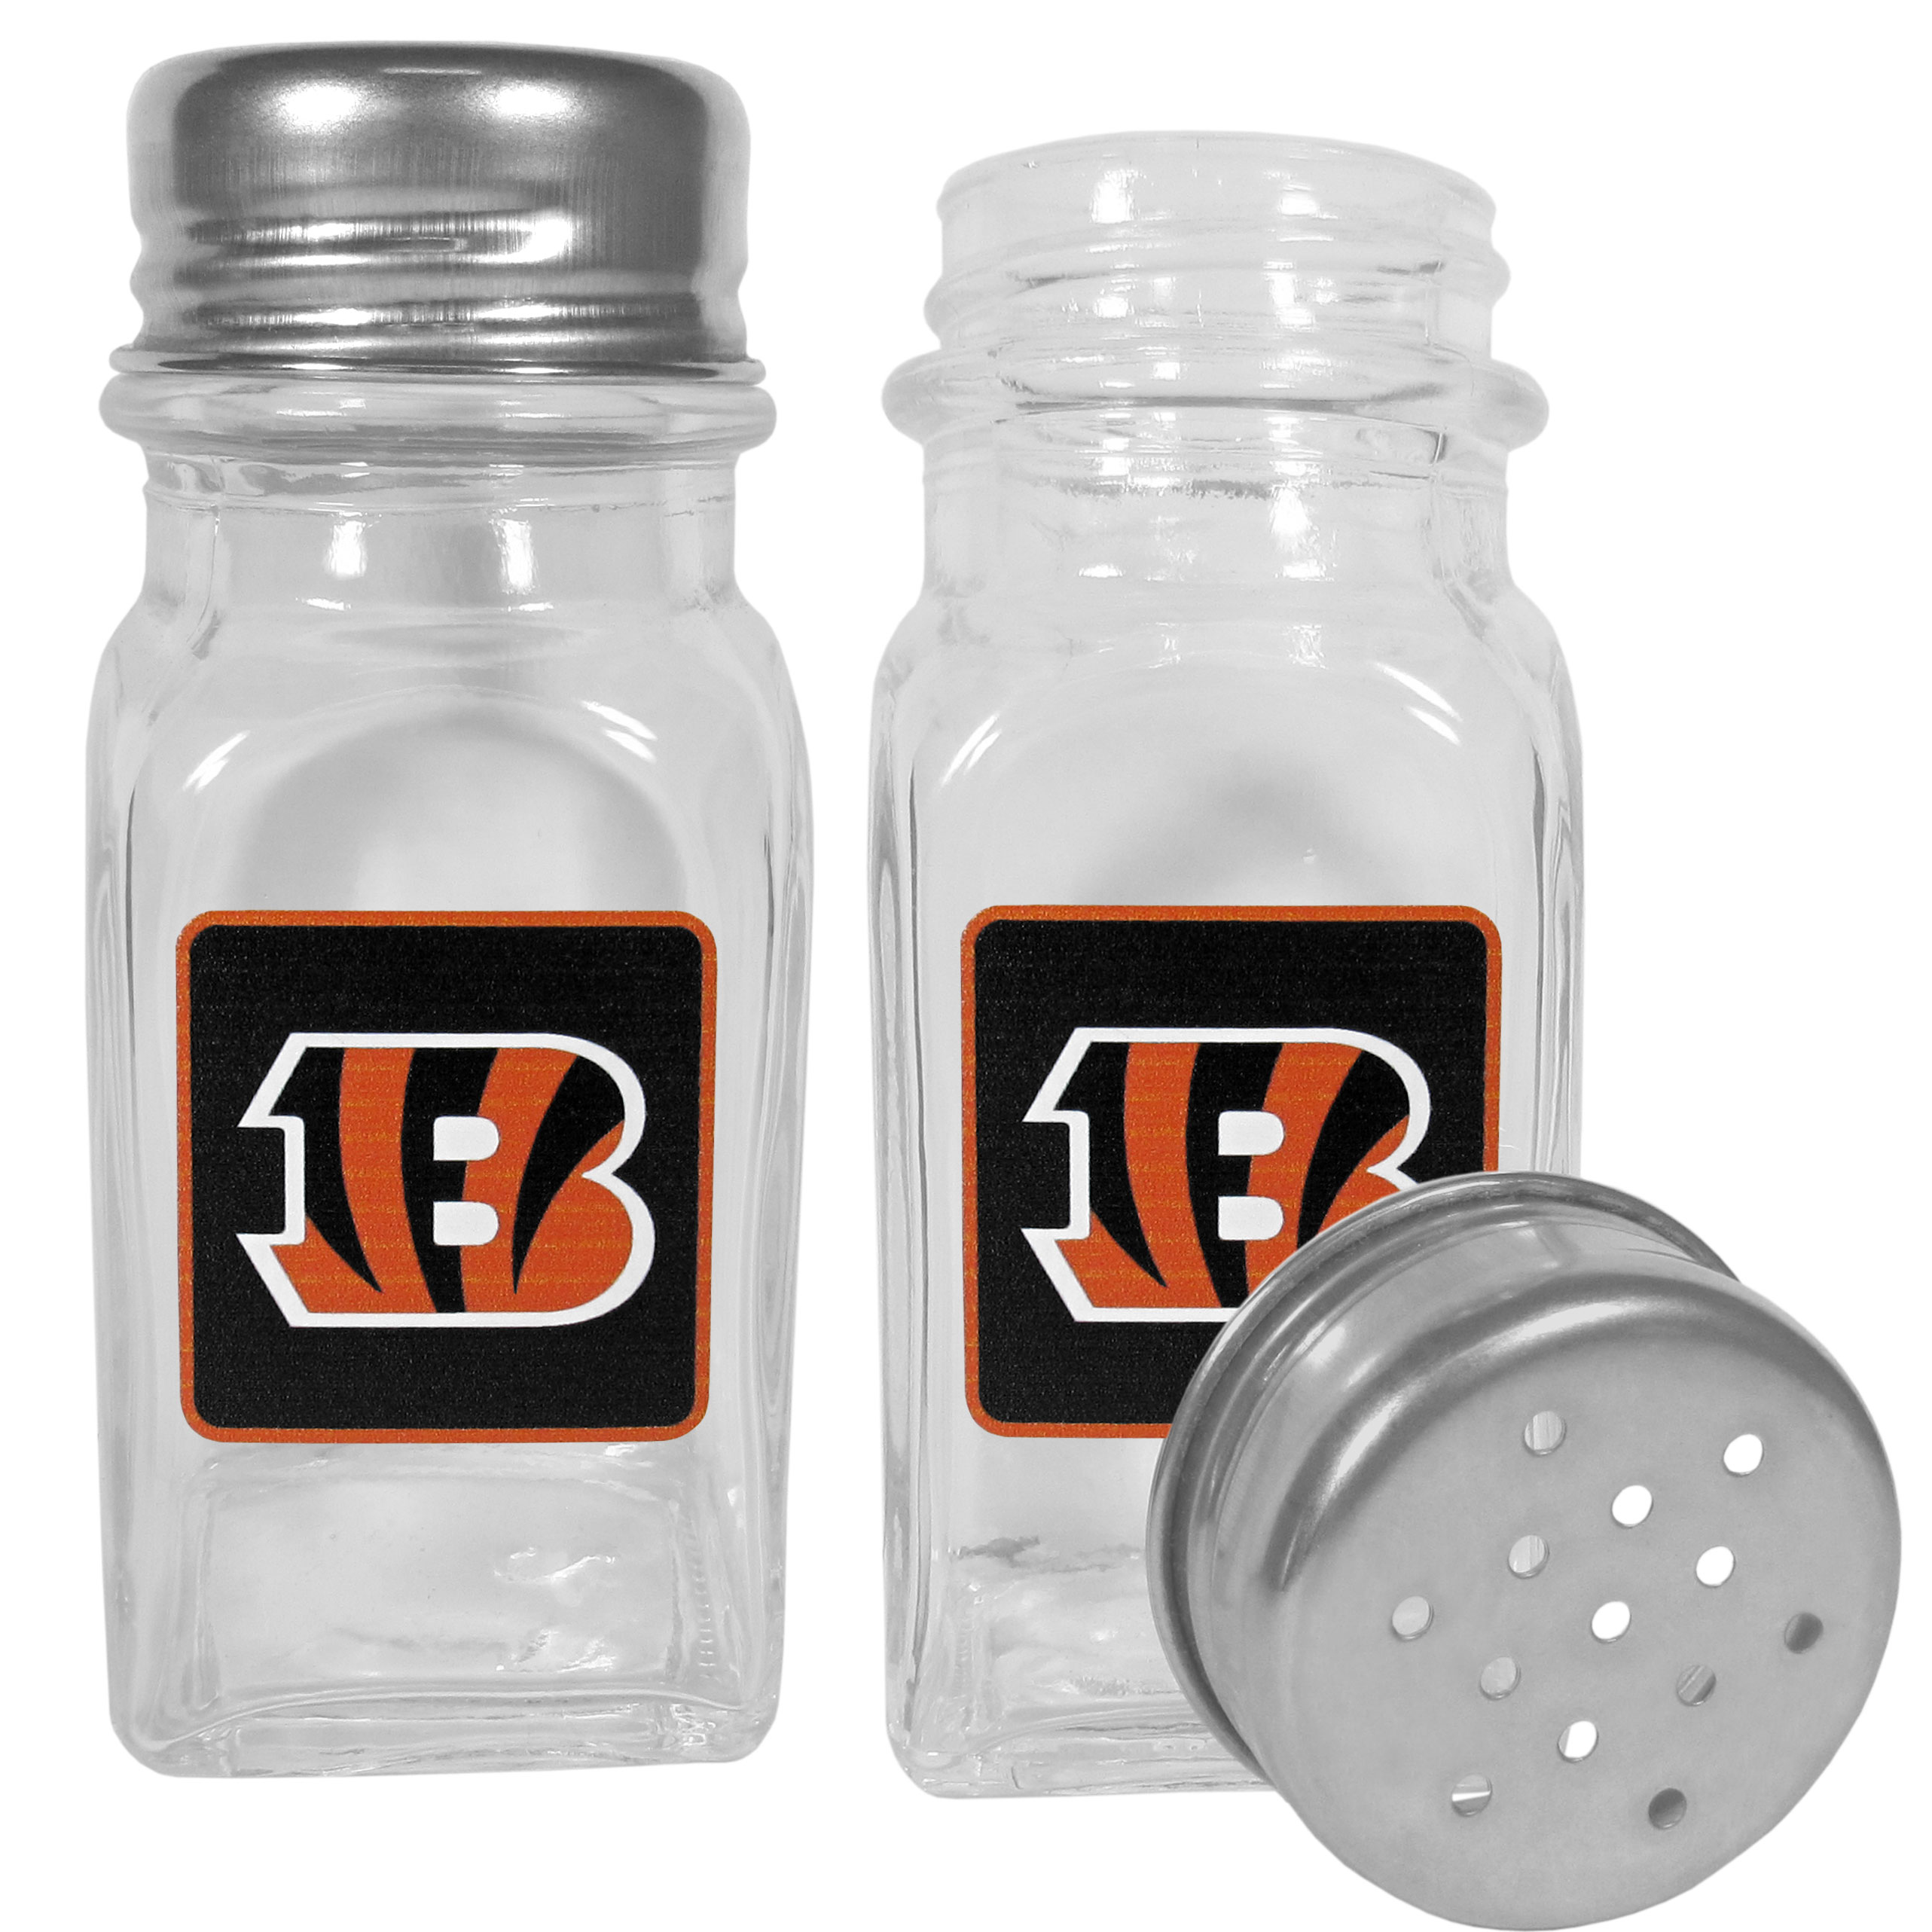 Cincinnati Bengals Graphics Salt & Pepper Shaker - No tailgate party is complete without your Cincinnati Bengals salt & pepper shakers featuring bright team logos. The diner replica salt and pepper shakers are glass with screw top lids. These team shakers are a great grill accessory whether you are barbecuing on the patio, picnicing or having a game day party.